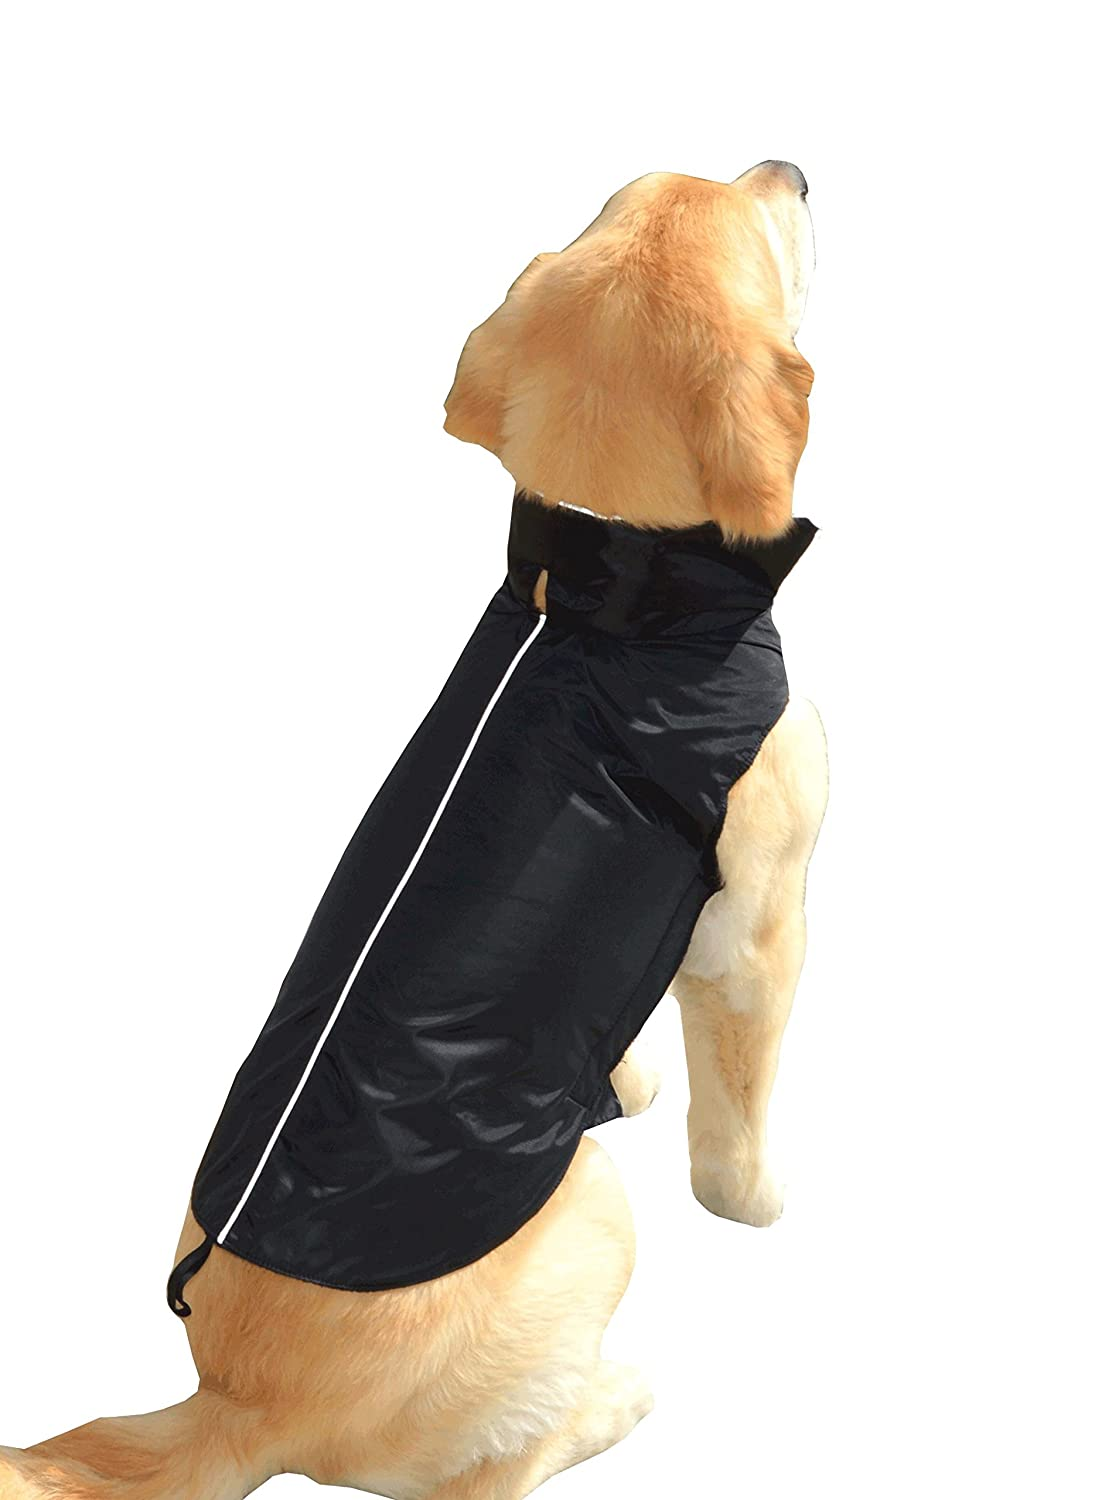 Black X-Large Black X-Large Water Resistant Dog Jacket, Fleece Lined, Warm, Dog Accessory, For Small, Medium & Large Pet Dogs (Black, X-Large), by Downtown Pet Supply